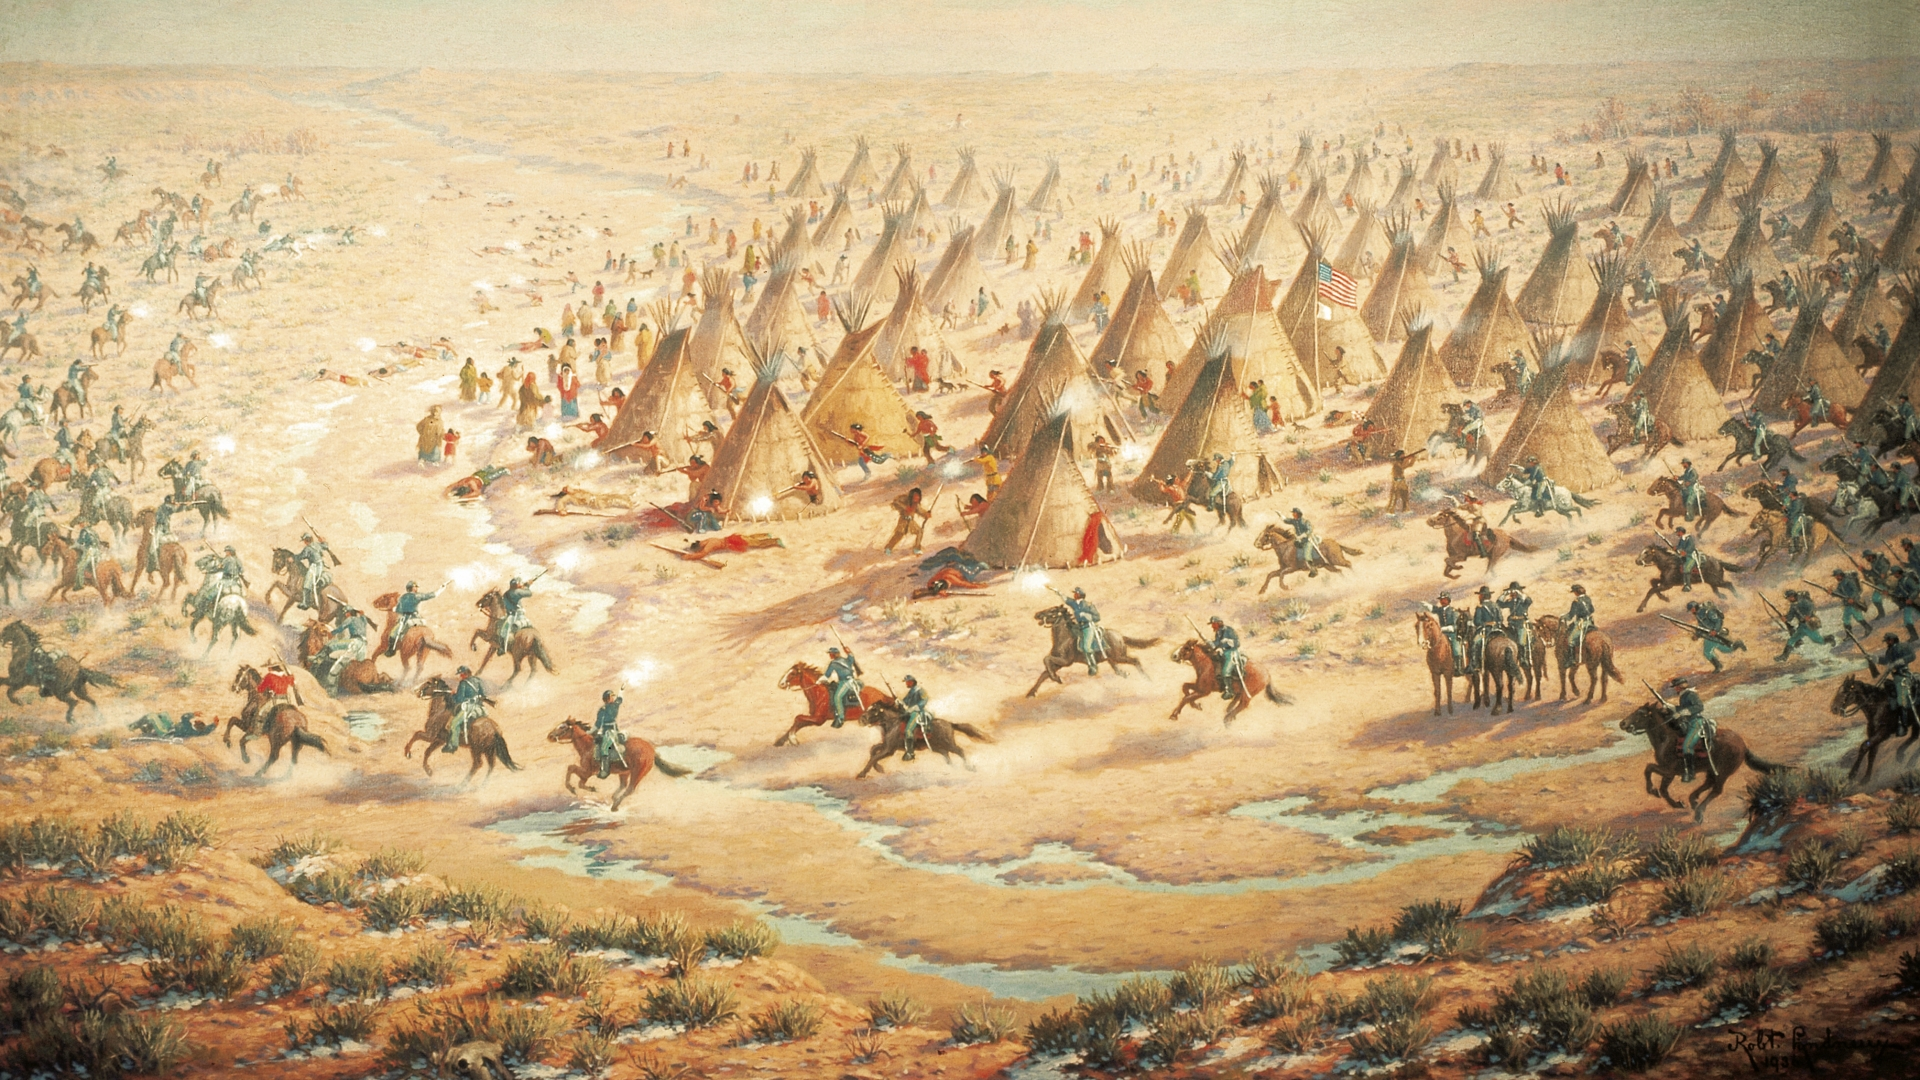 Sand Creek Massacre, 1864. (Credit: DeAgostini/Getty Images)